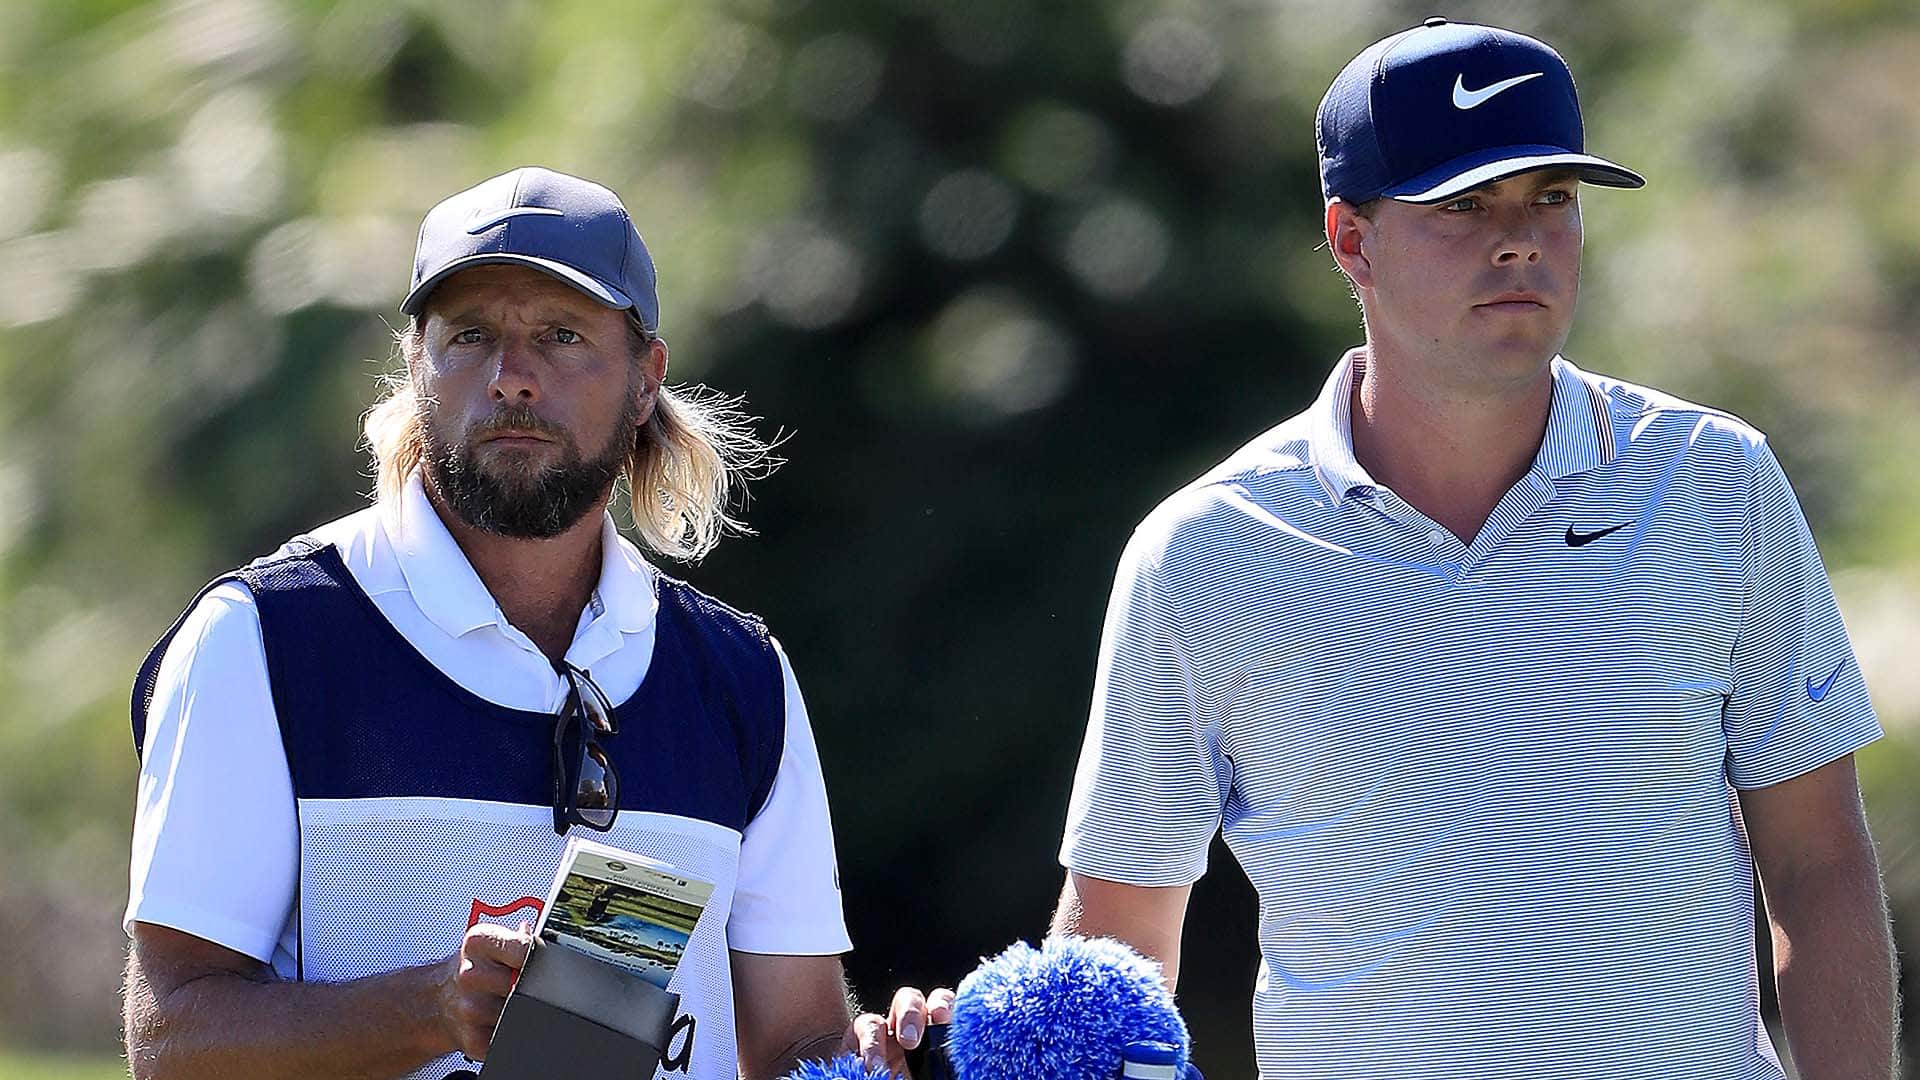 Keith Mitchell's Caddie Getting The Most Attention?